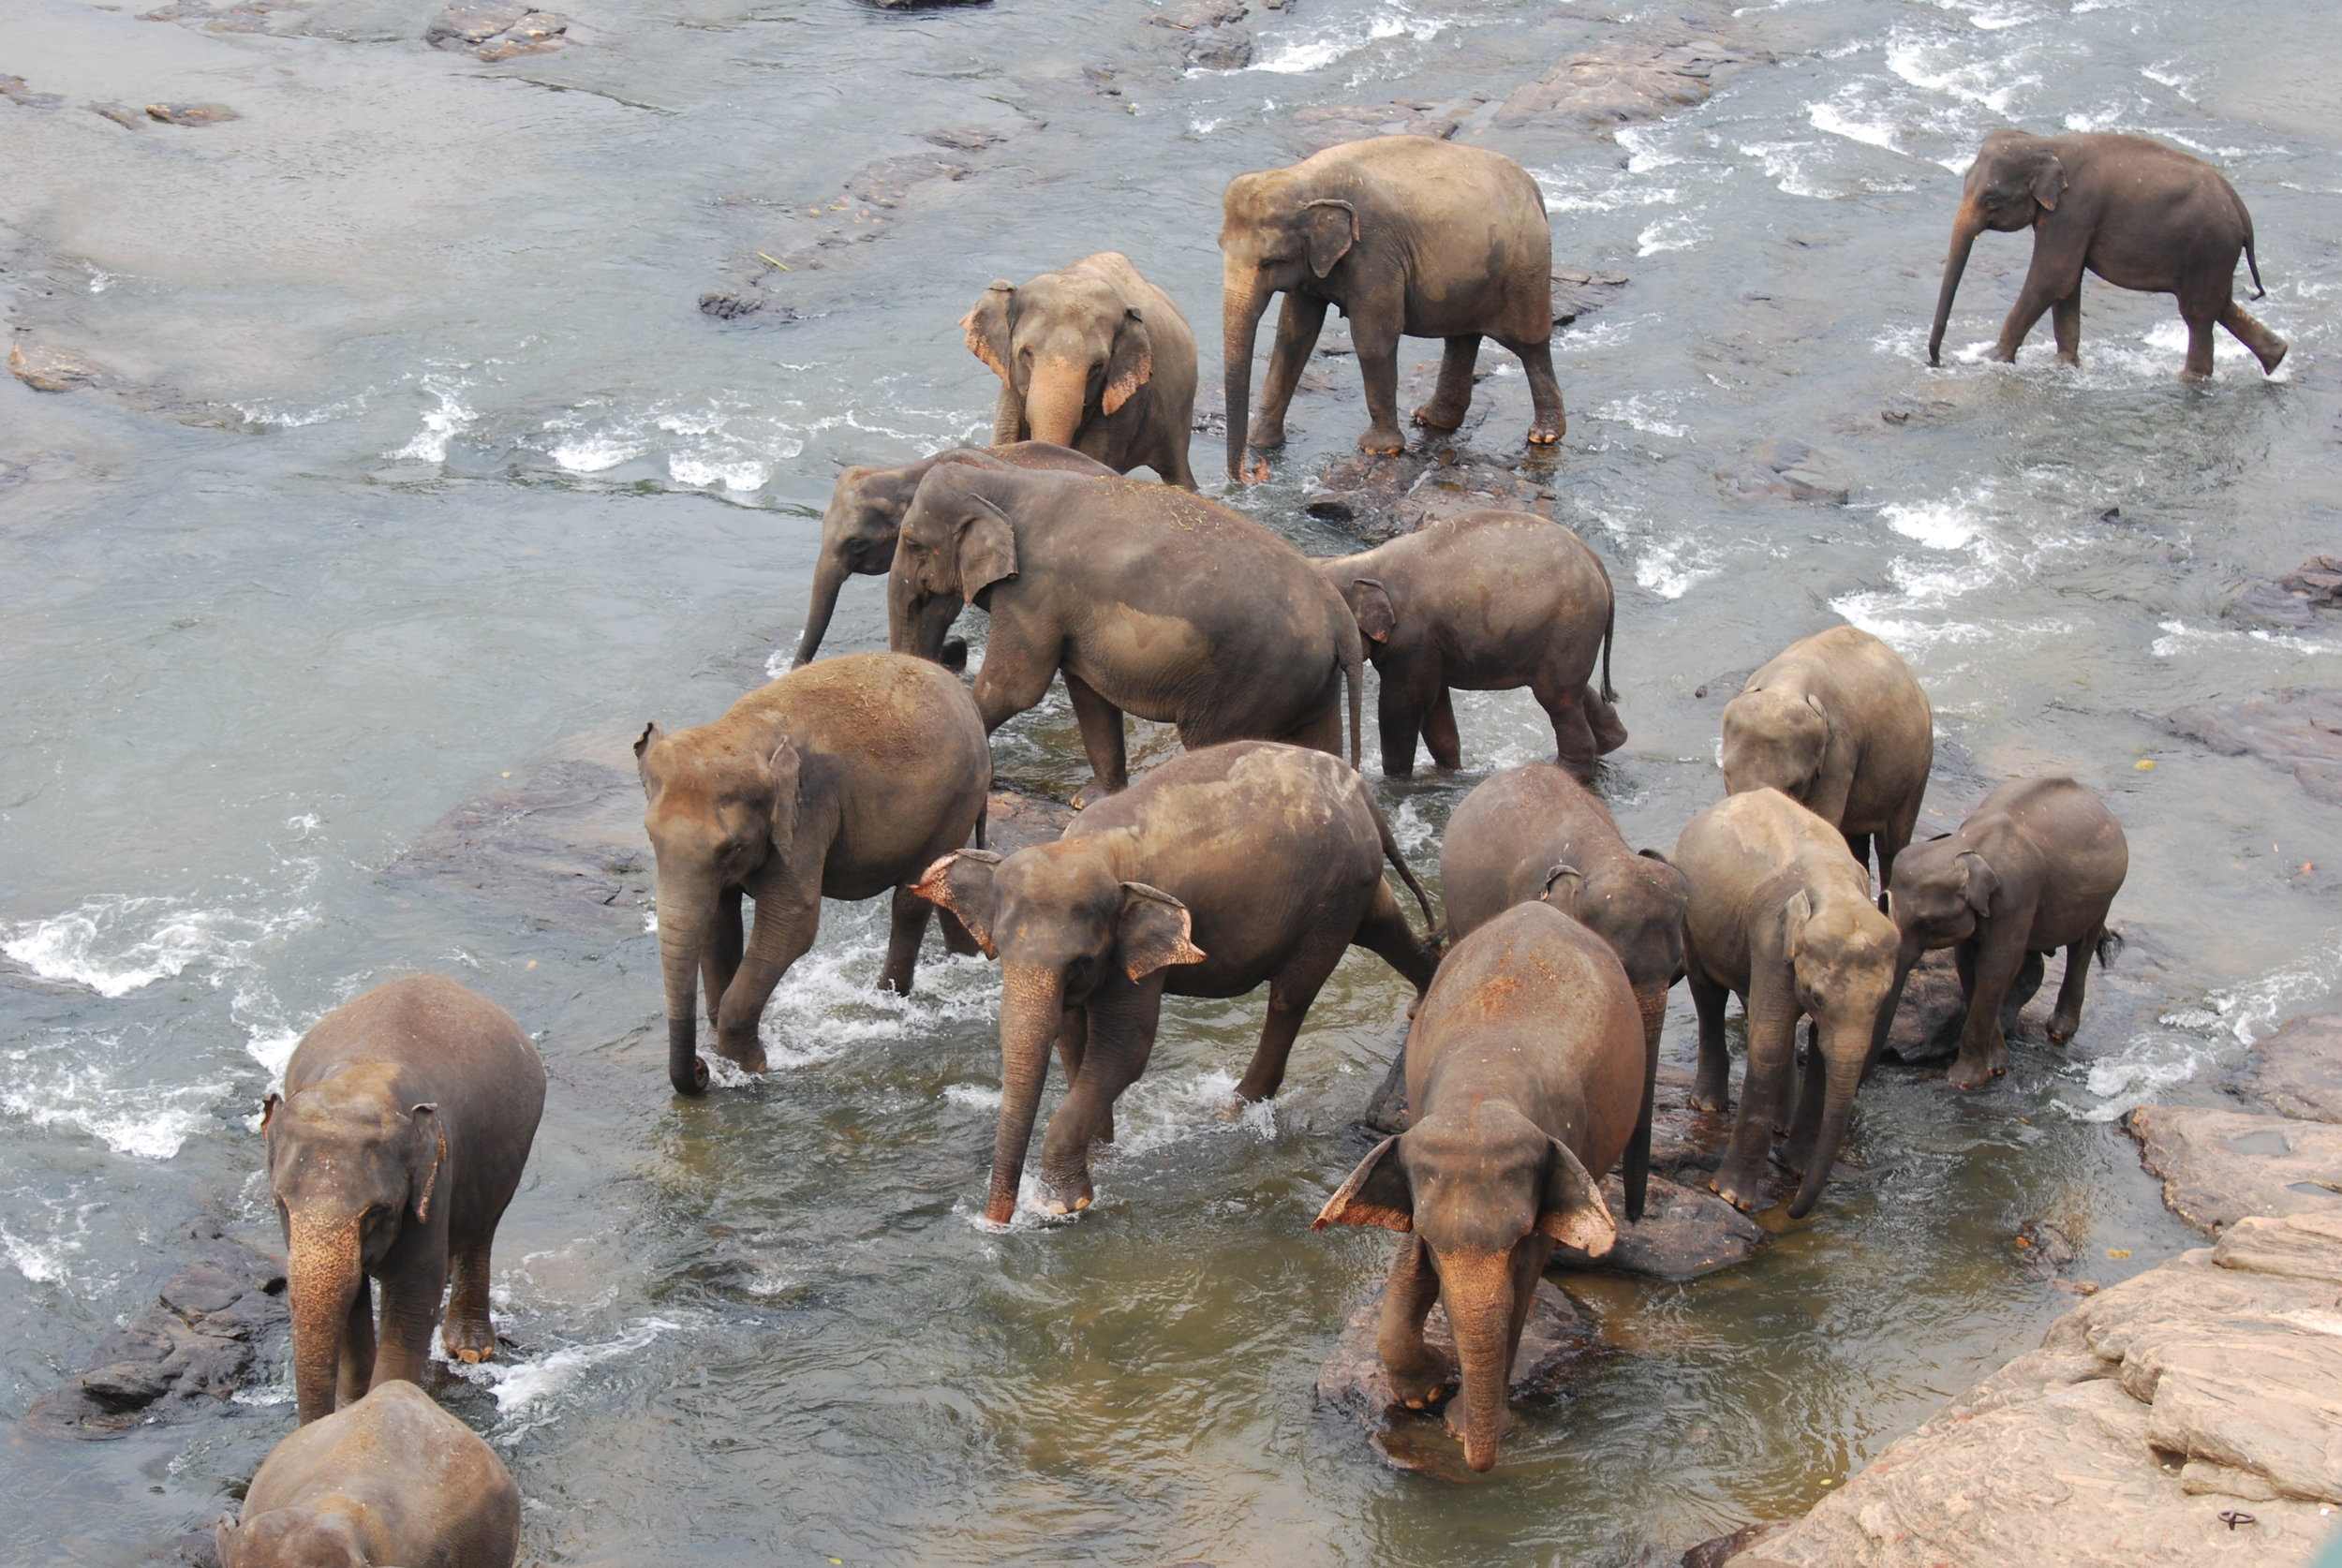 A group of elephants in the Maha Oya during a bathing session, taken from the balcony of our hotel. 14 January 2019.